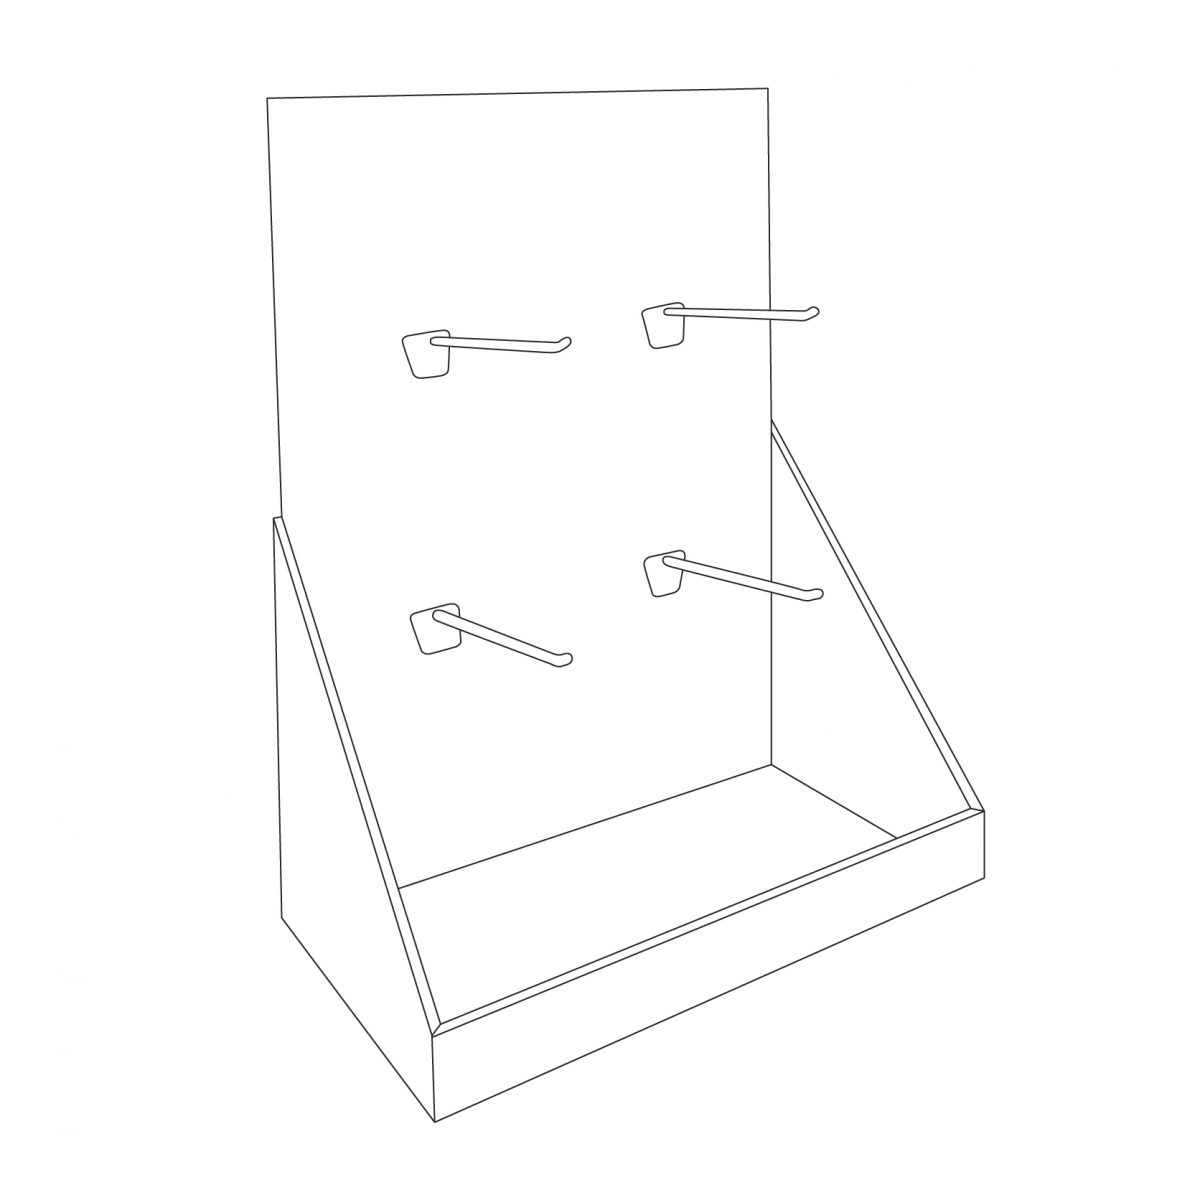 Cardboard counter display with 4 pegs/hooks for face masks - covid-19 face mask - outline